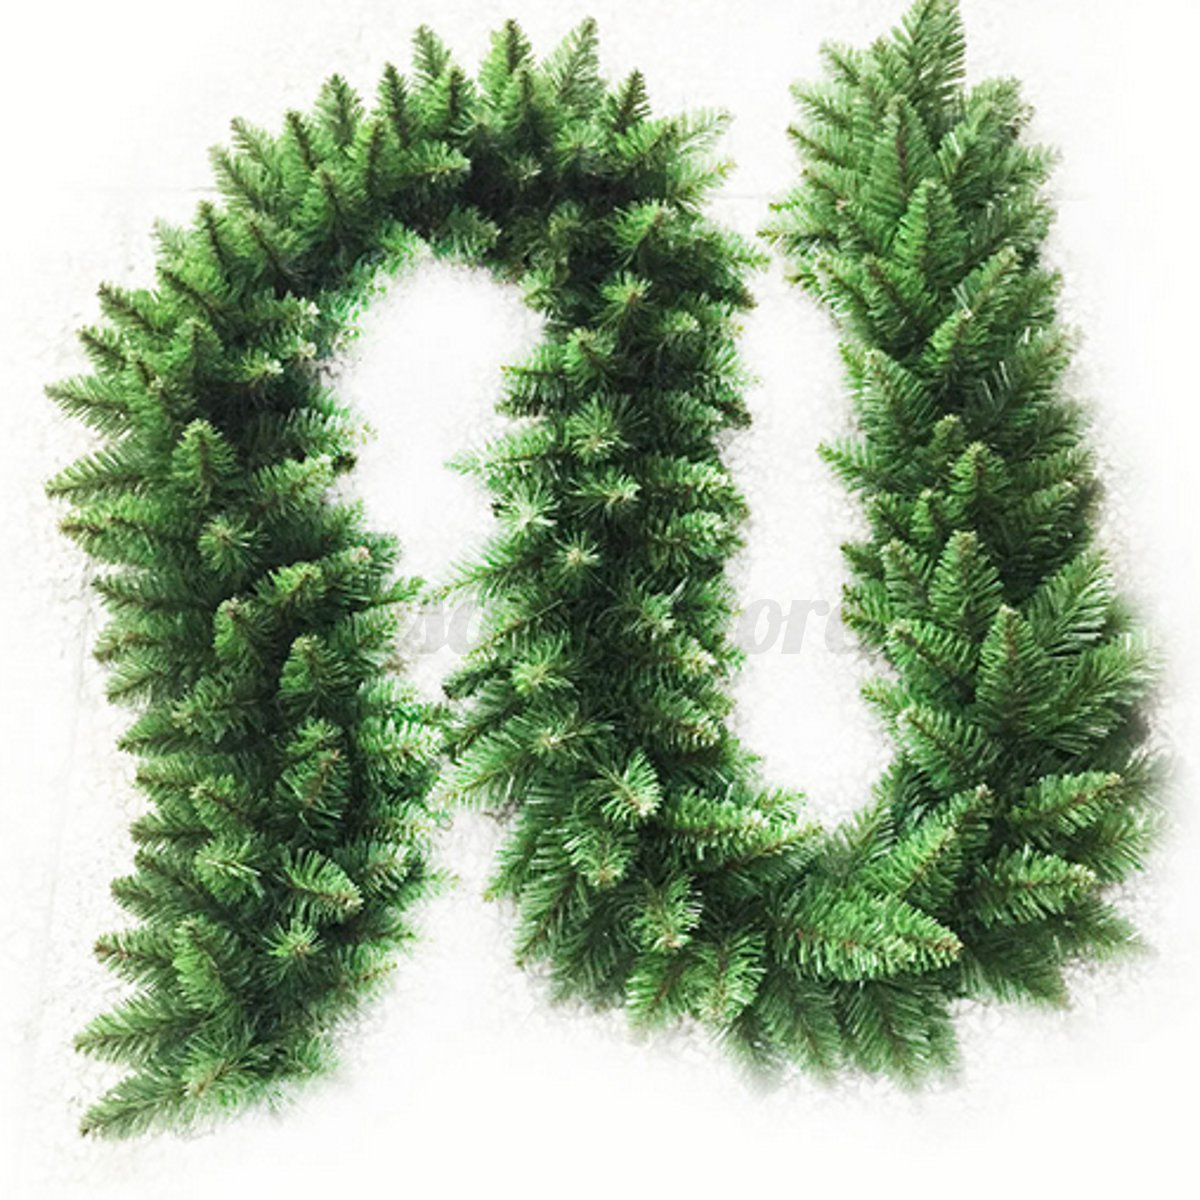 2.7m Long Green Christmas Garland Pine Wreath Xmas Fireplace Tree ...